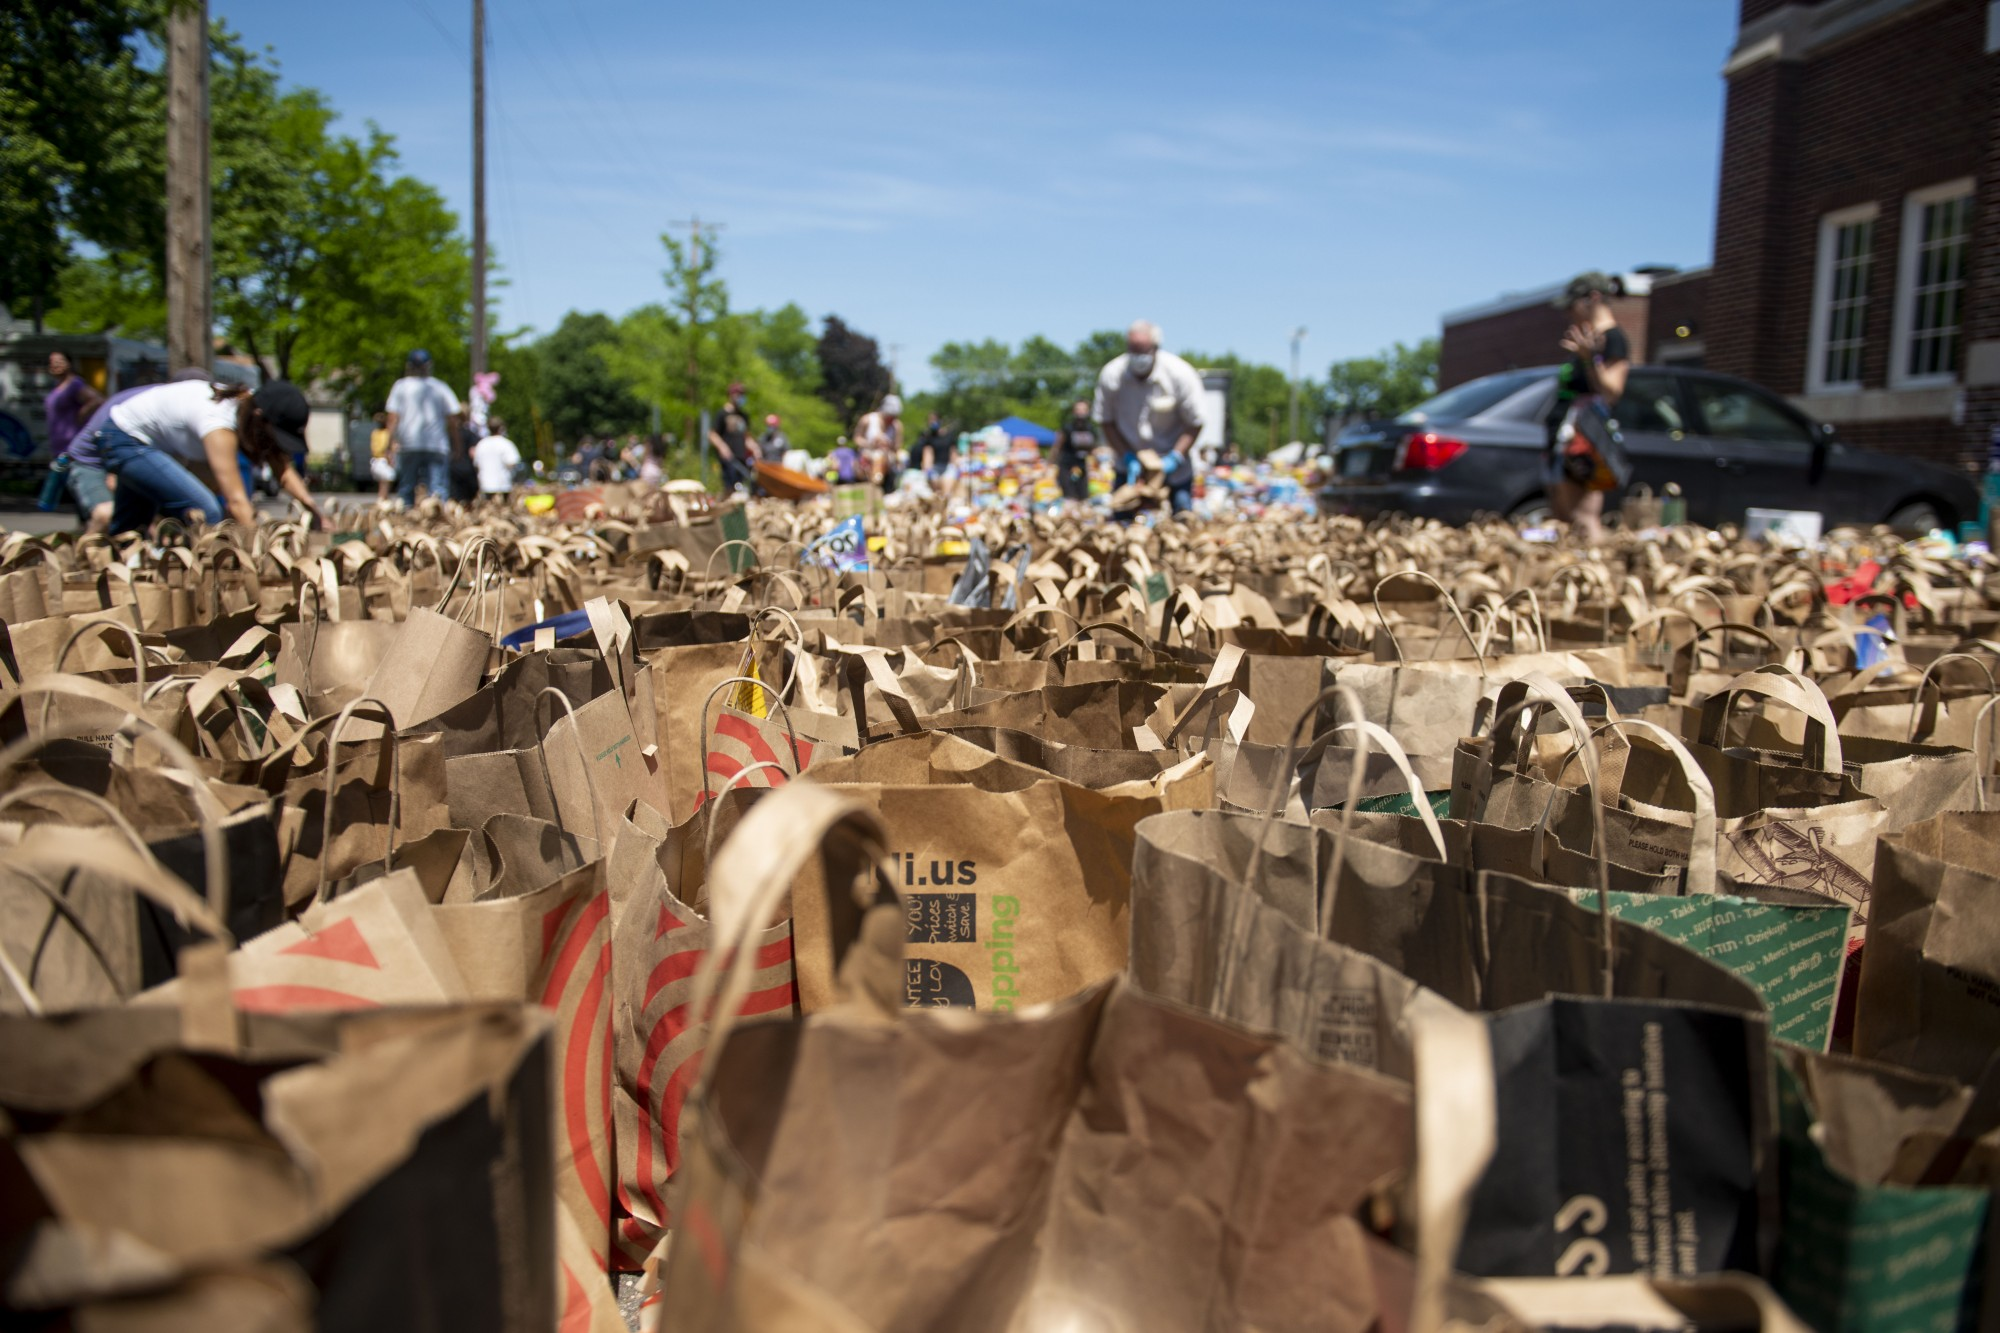 Donated goods are stockpiled and organized outside of Sanford Middle School in Minneapolis on Sunday, May 31.